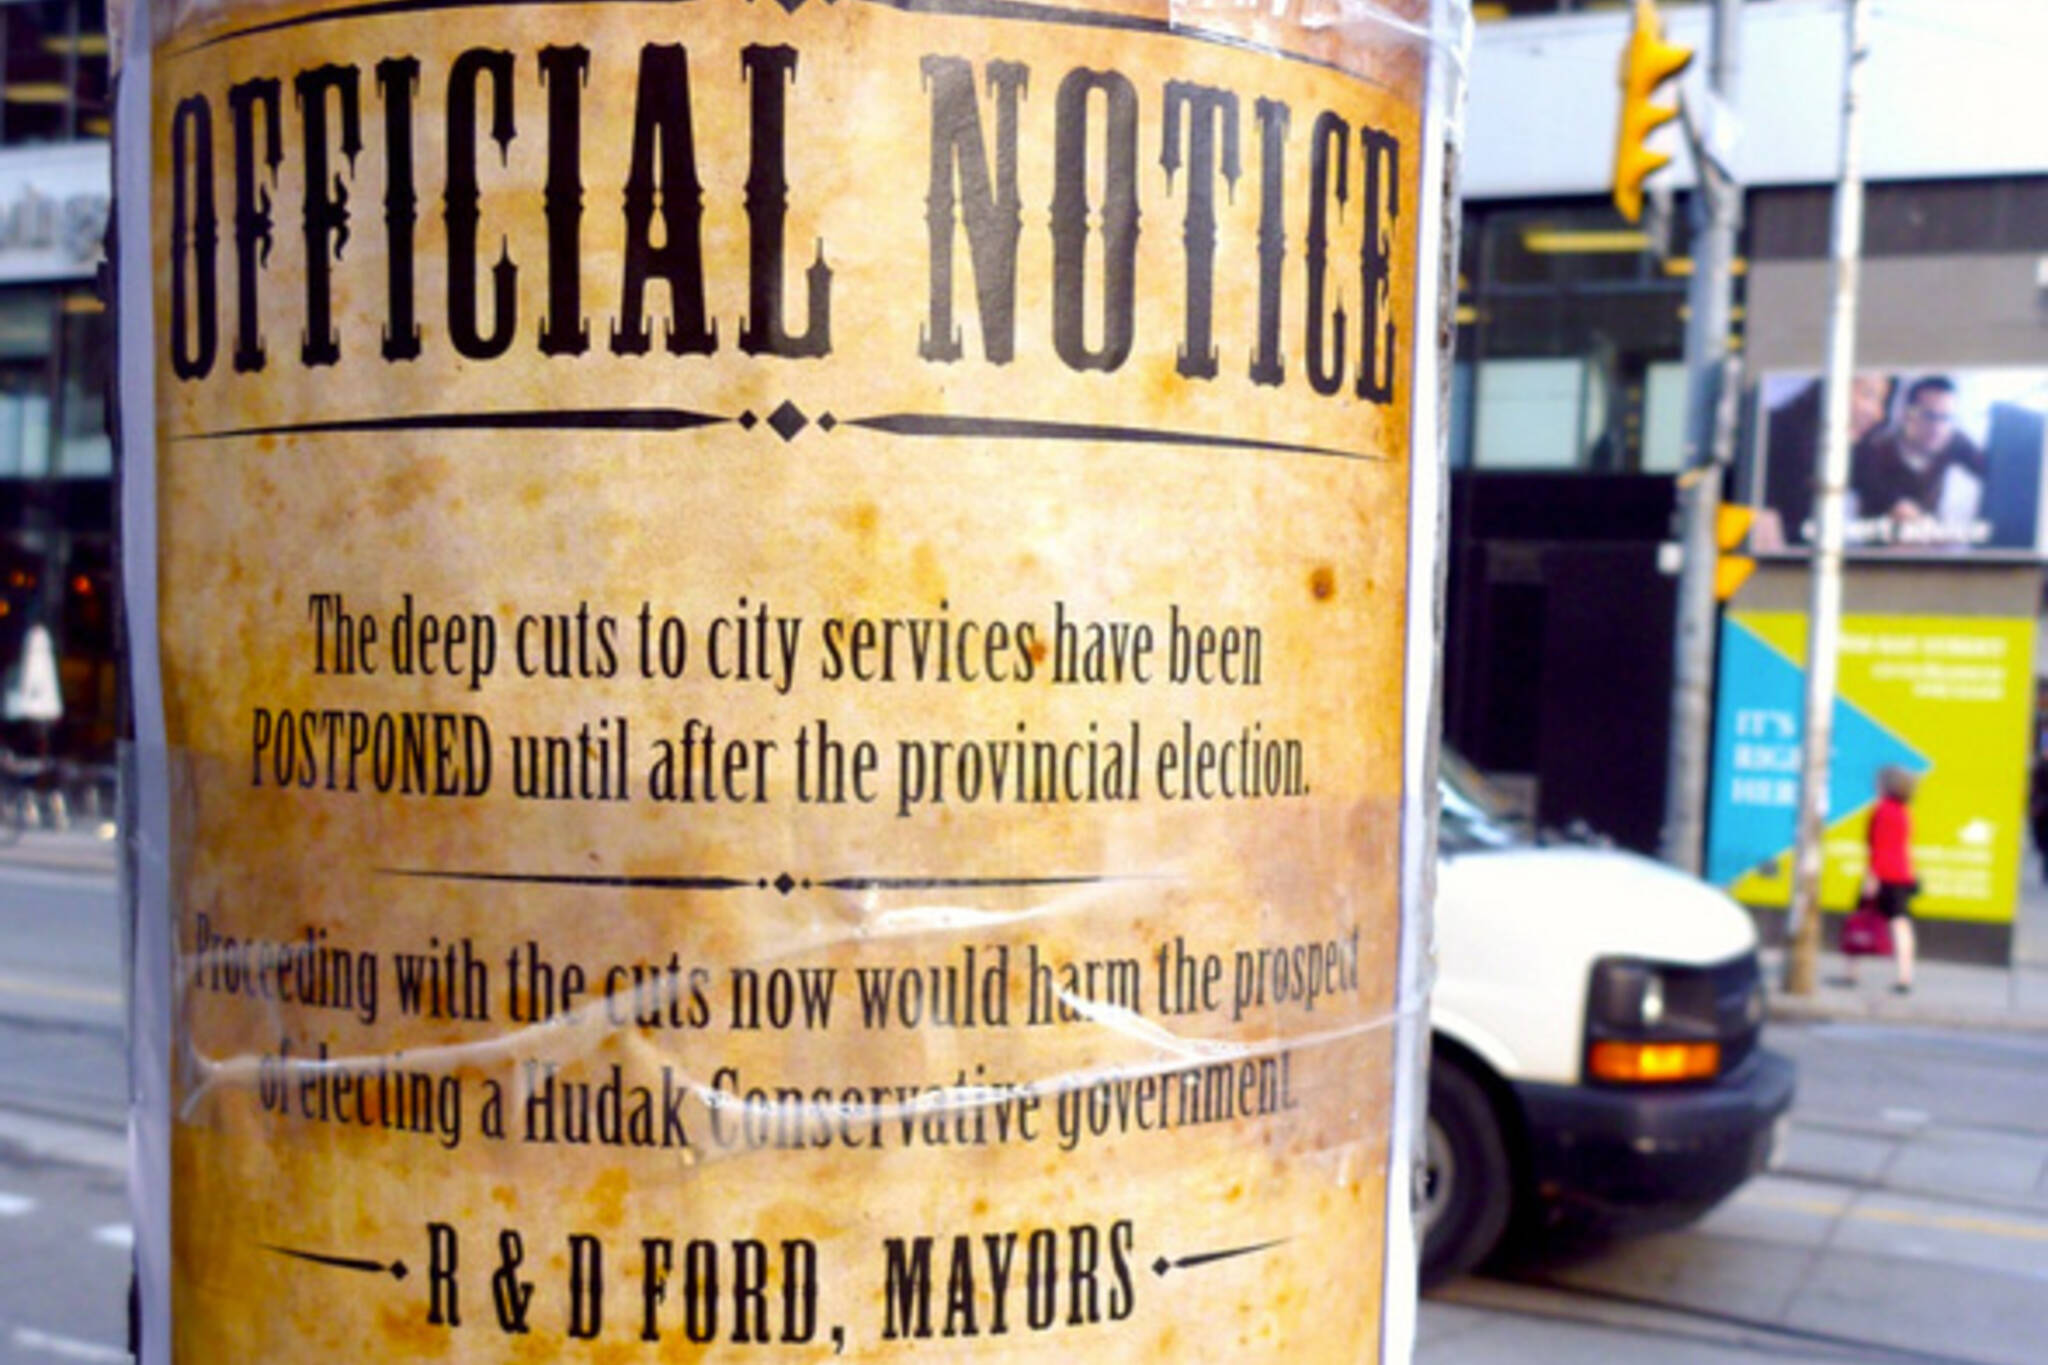 Official Notice service cuts Toronto street art